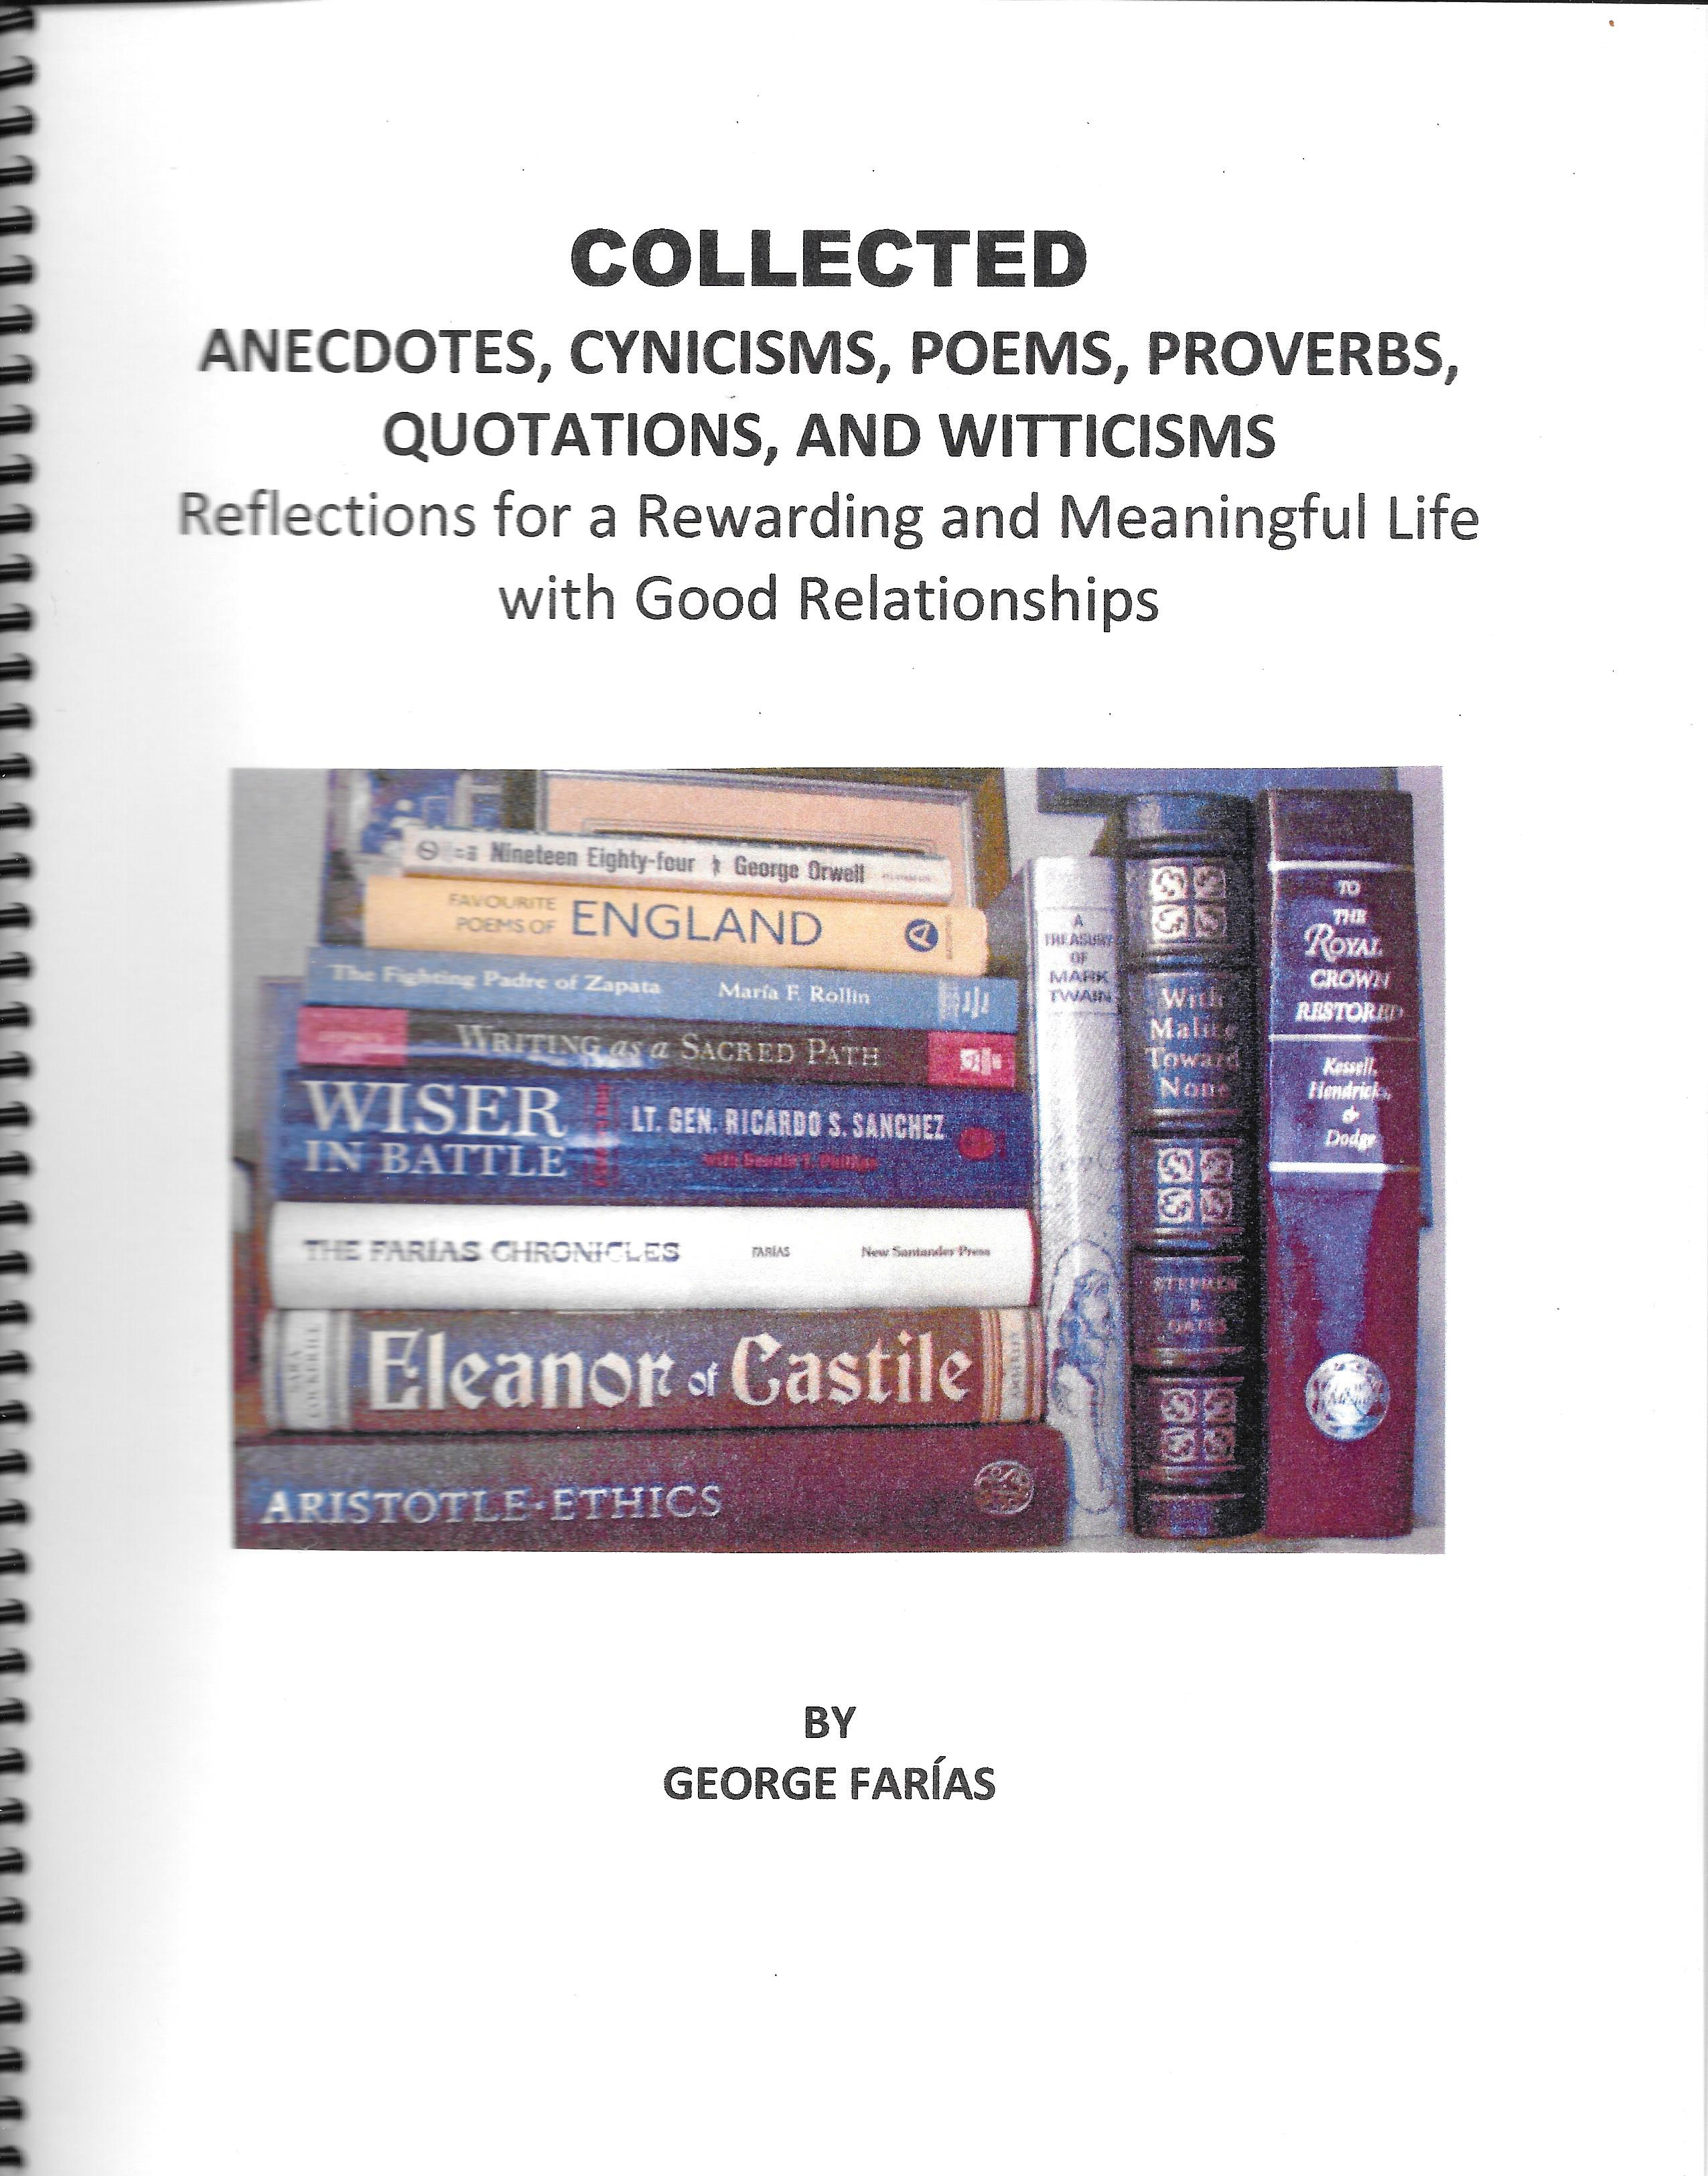 collected anecdotes cynicisms poems proverbs quotations and witticisms borderlands bookstore